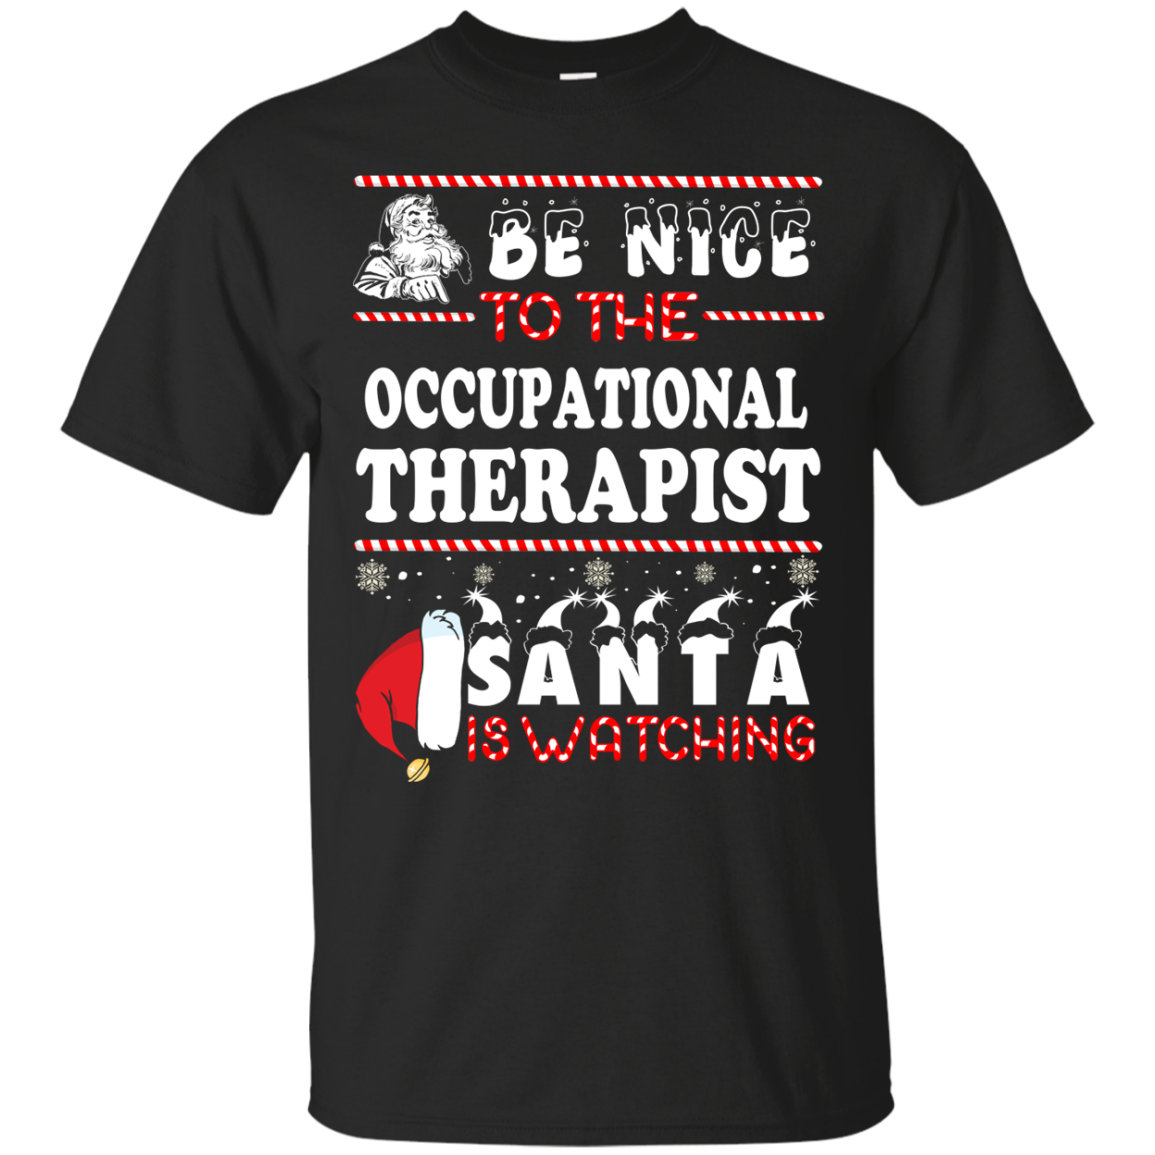 Be Nice To The Occupational Therapist Santa Is Watching Sweatshirt, T Shirt